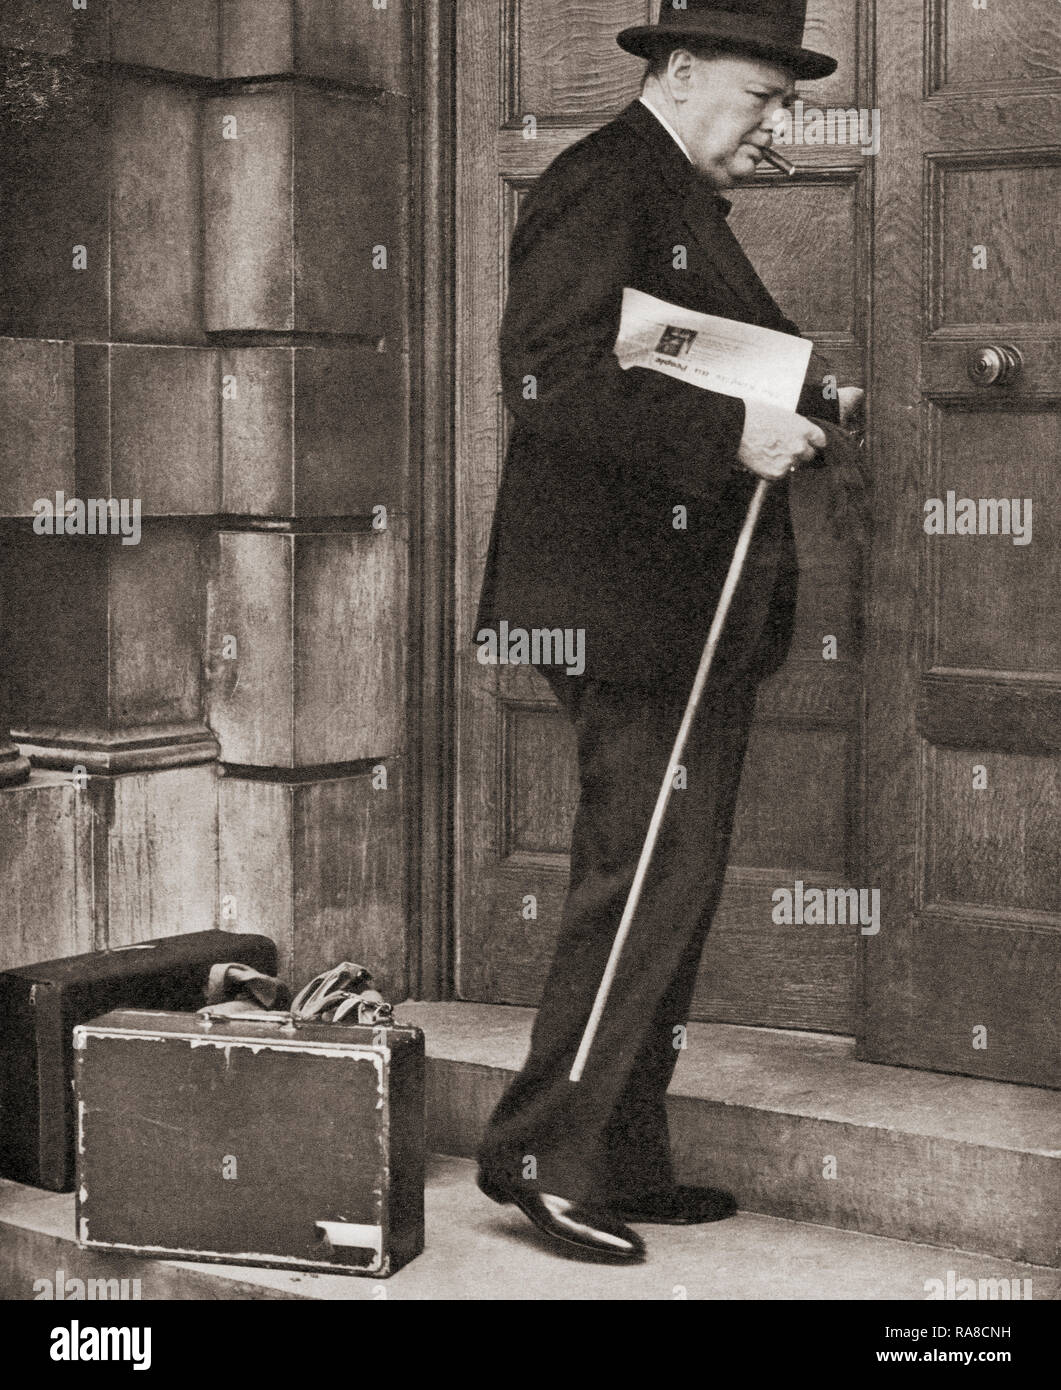 Winston Churchill, seen here returning to the admirality in 1939 after being appointed First Lord of the Admiralty following the outbreak of the Second World War.  Sir Winston Leonard Spencer-Churchill, 1874 –1965. British politician, statesman, army officer, and writer, who was Prime Minister of the United Kingdom from 1940 to 1945 and again from 1951 to 1955. - Stock Image